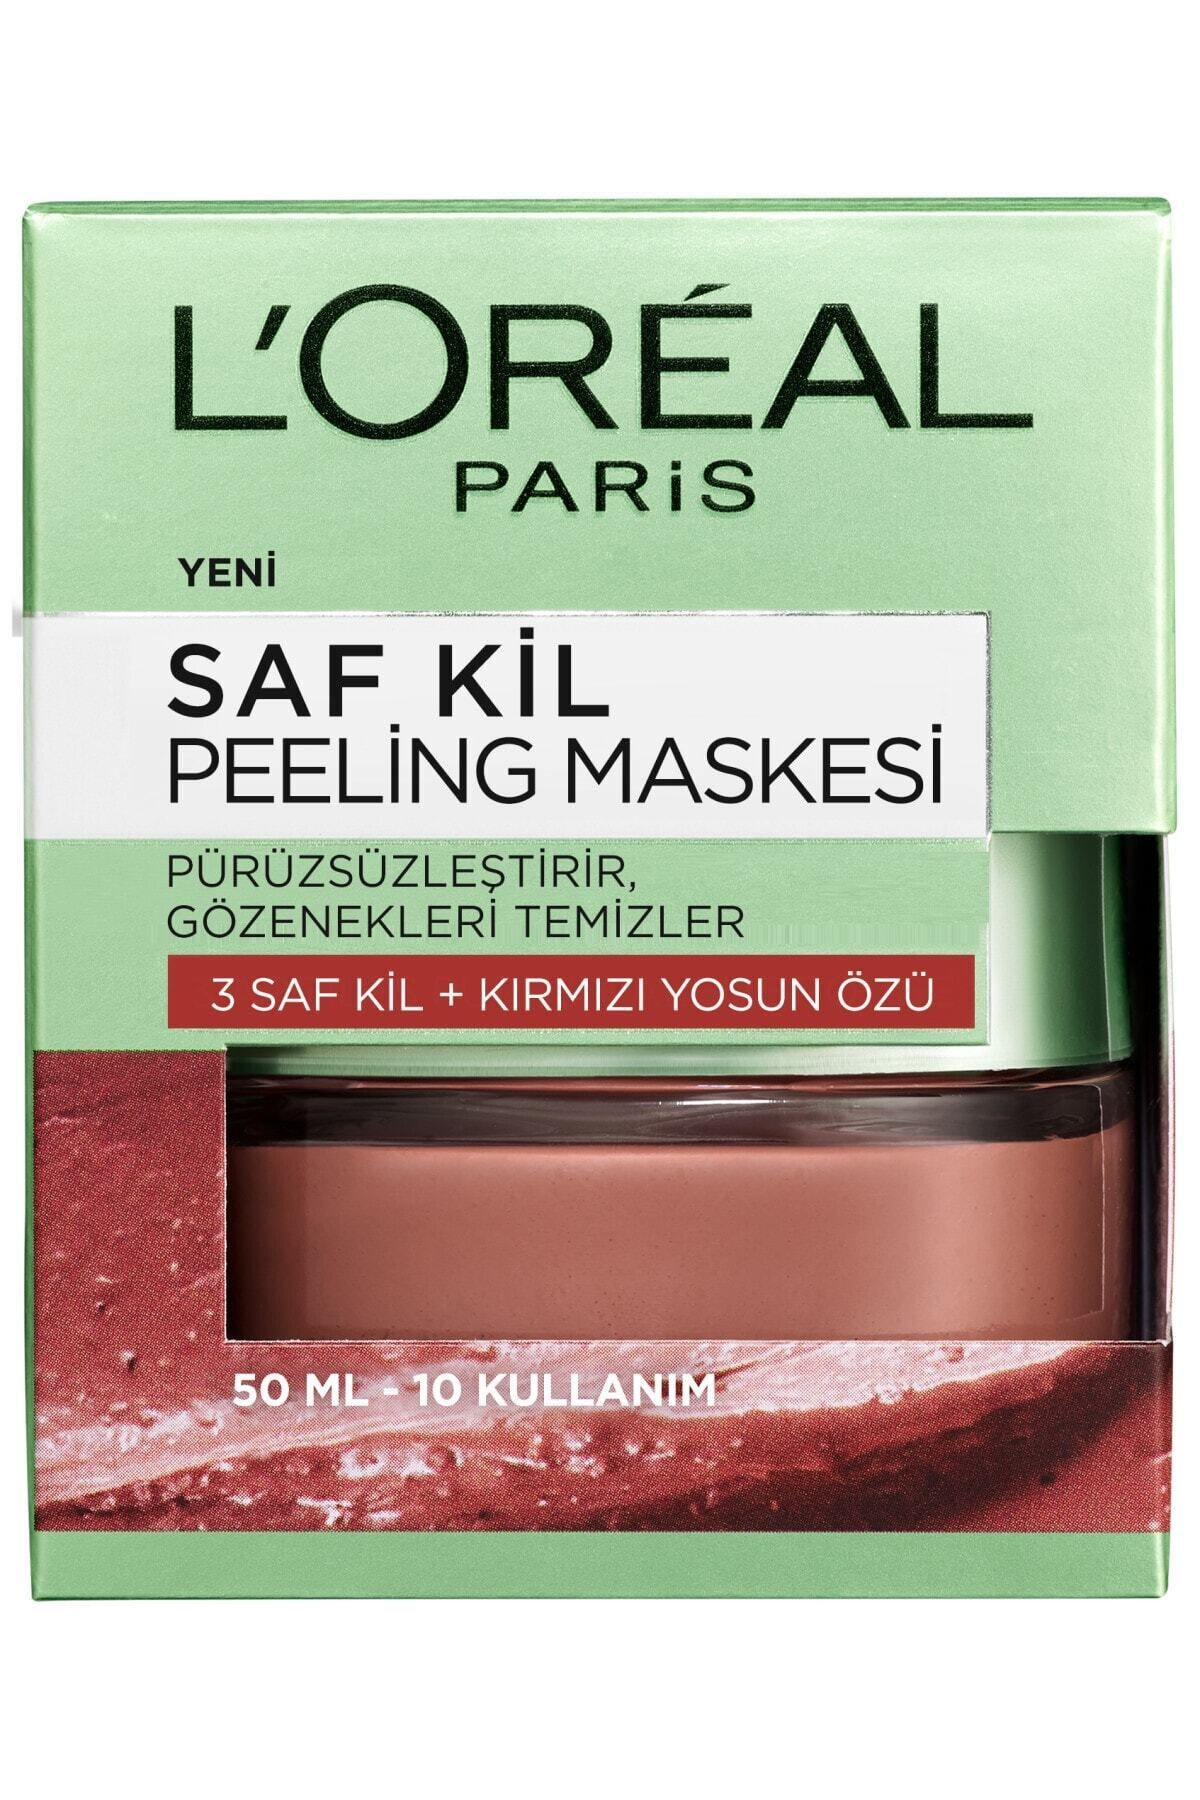 L'Oreal Paris Saf Kil Peeling Maskesi - Pure Clay 50 Ml 3600523306367 2